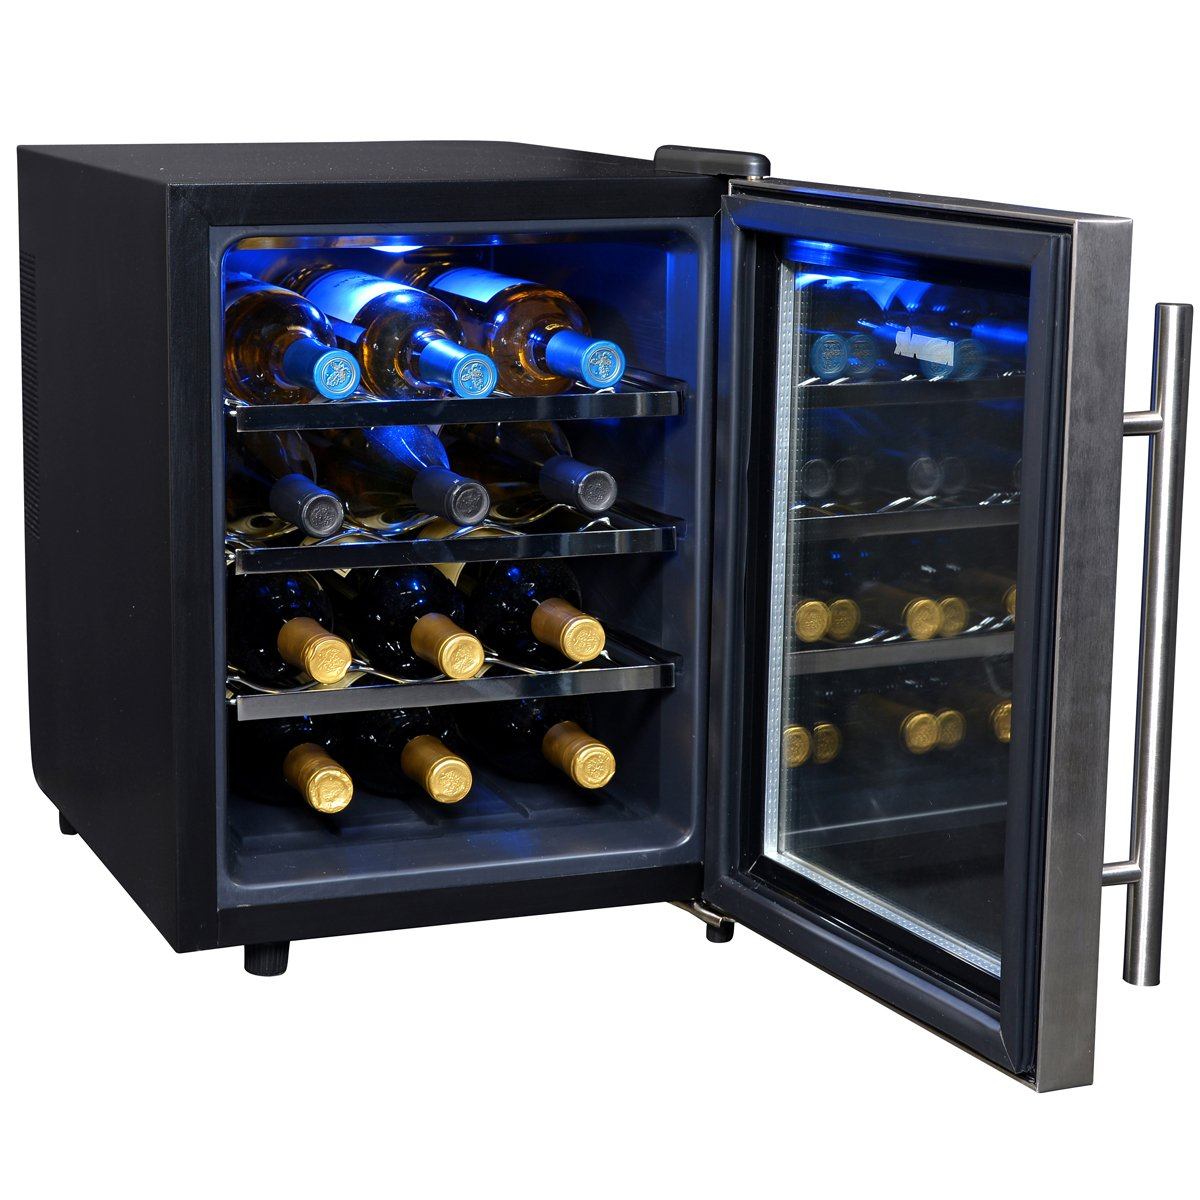 on that freestanding floor ivation the white of stylish wine and bottle a or best range popular do equally its at home cooler thermoelectric mixstik model holds are this red countertop bottles behind coolers